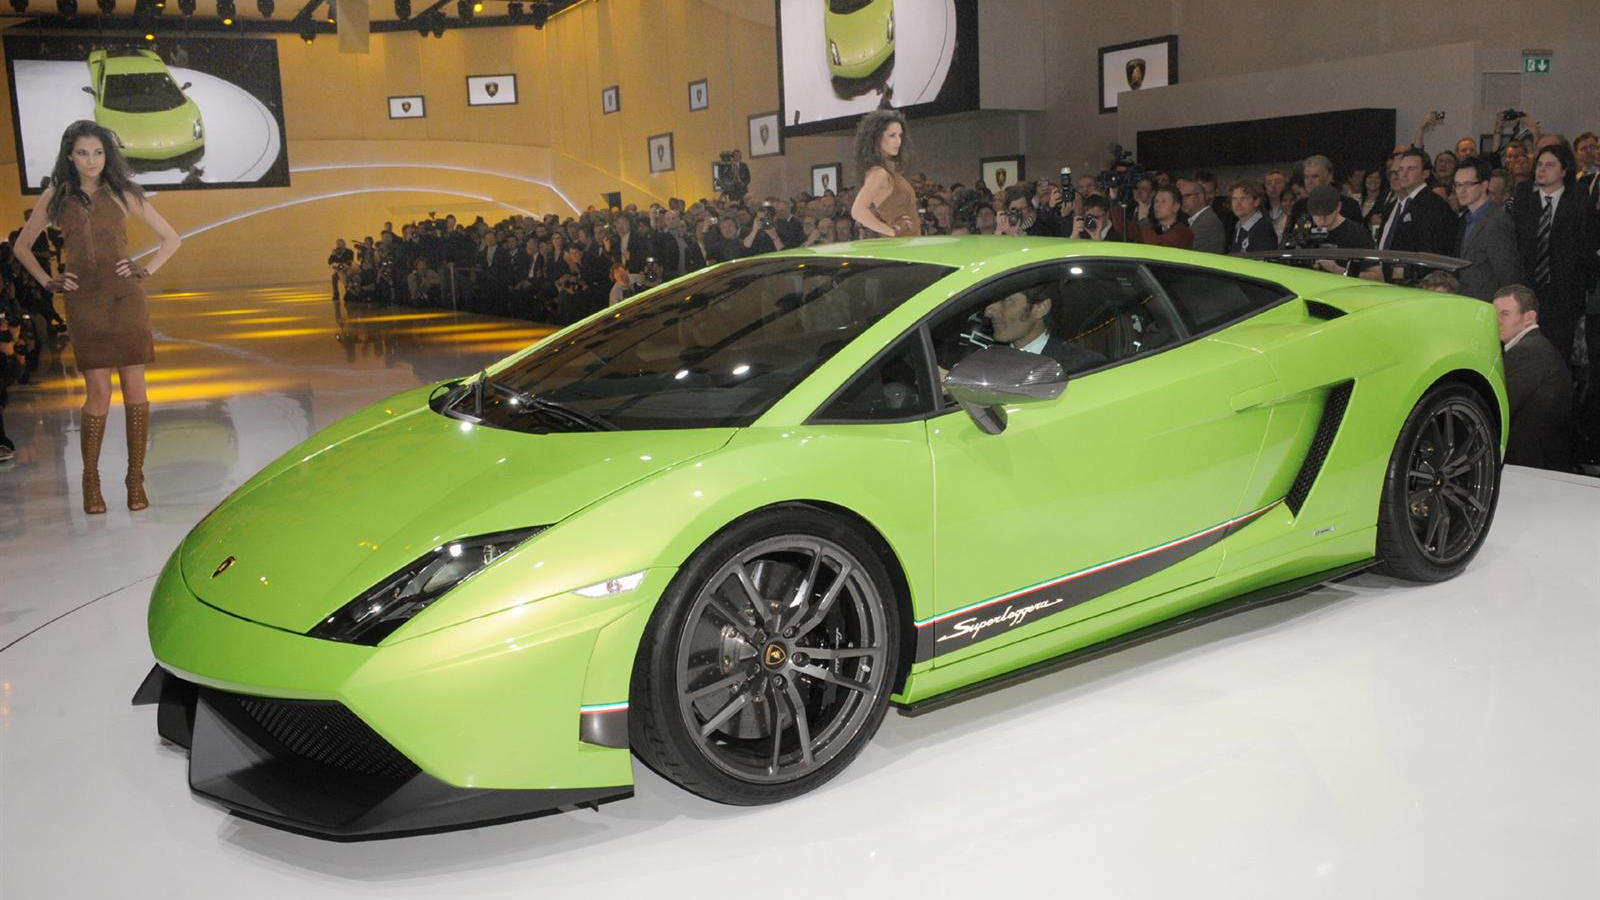 Lamborghini Gallardo LP 570-4 Superleggera live in Geneva. Photos © United Pictures, Int'l.